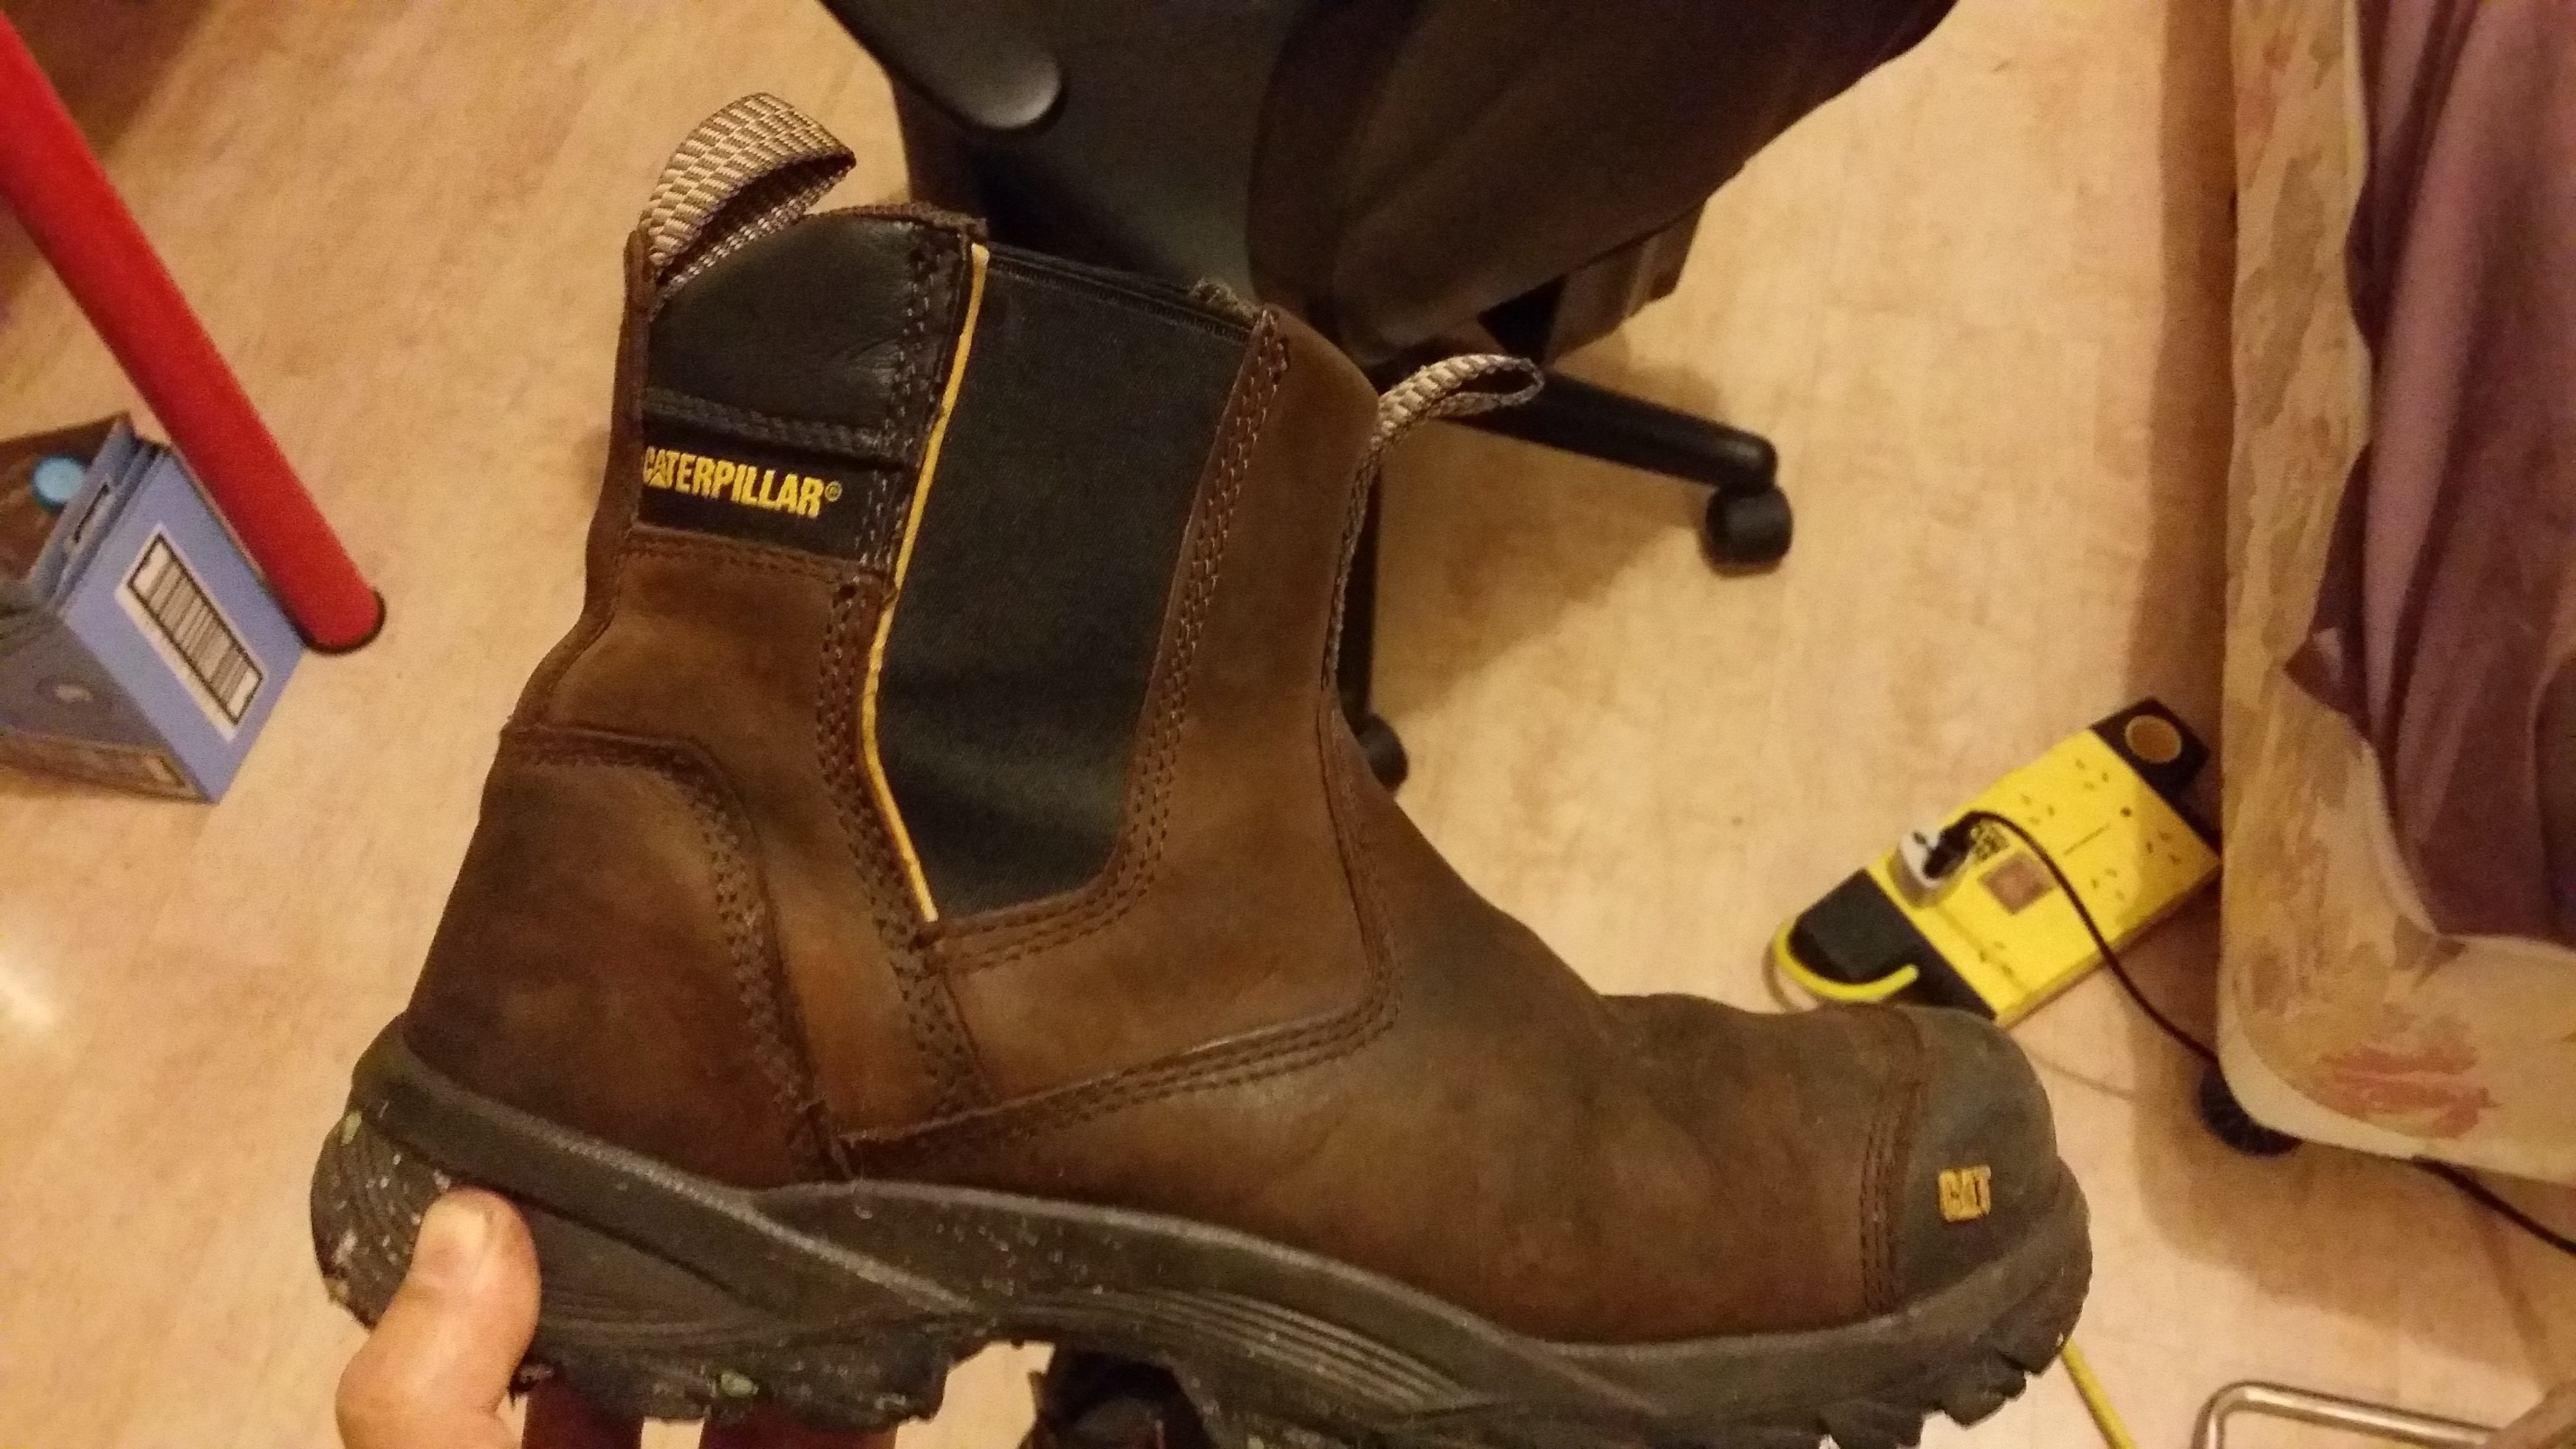 Top 32 Complaints and Reviews about Caterpillar Boots and Shoes